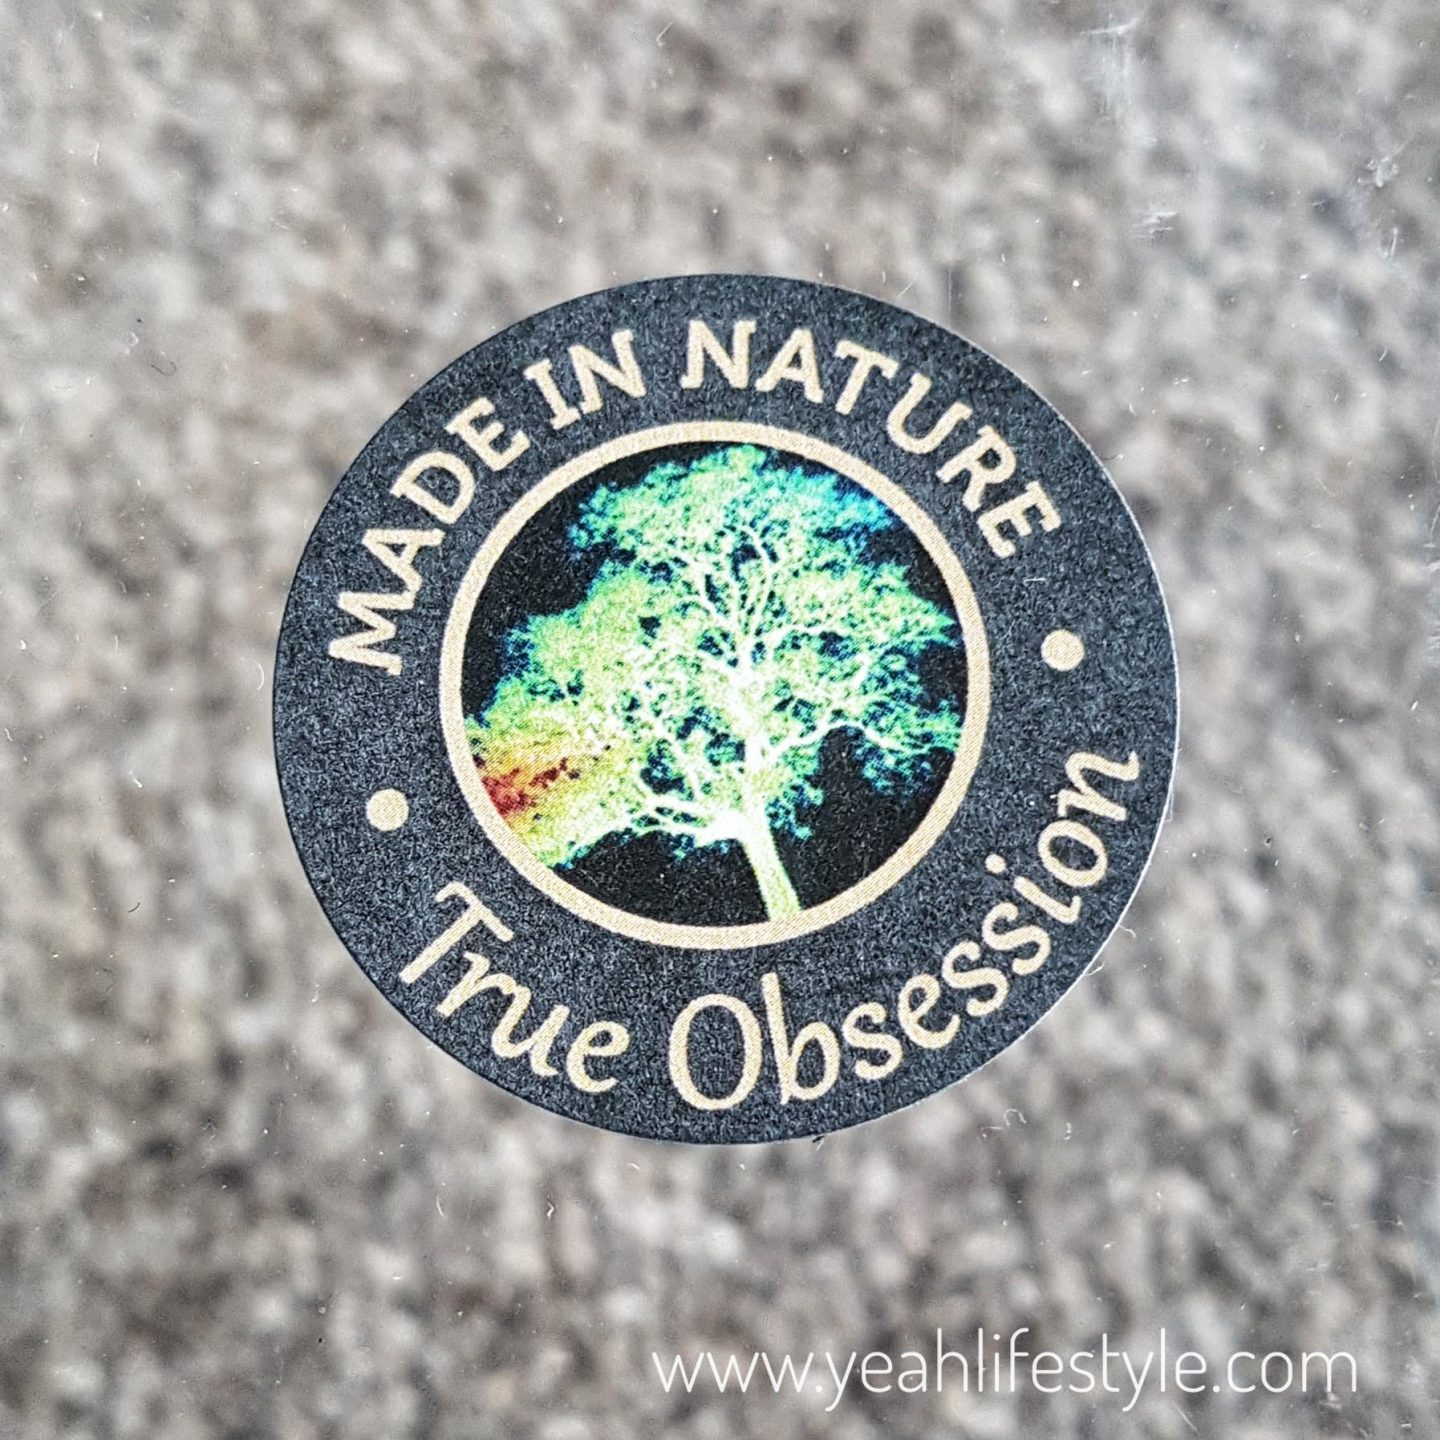 true-obsession-beauty-blogger-review-made-in-nature-true-obsession